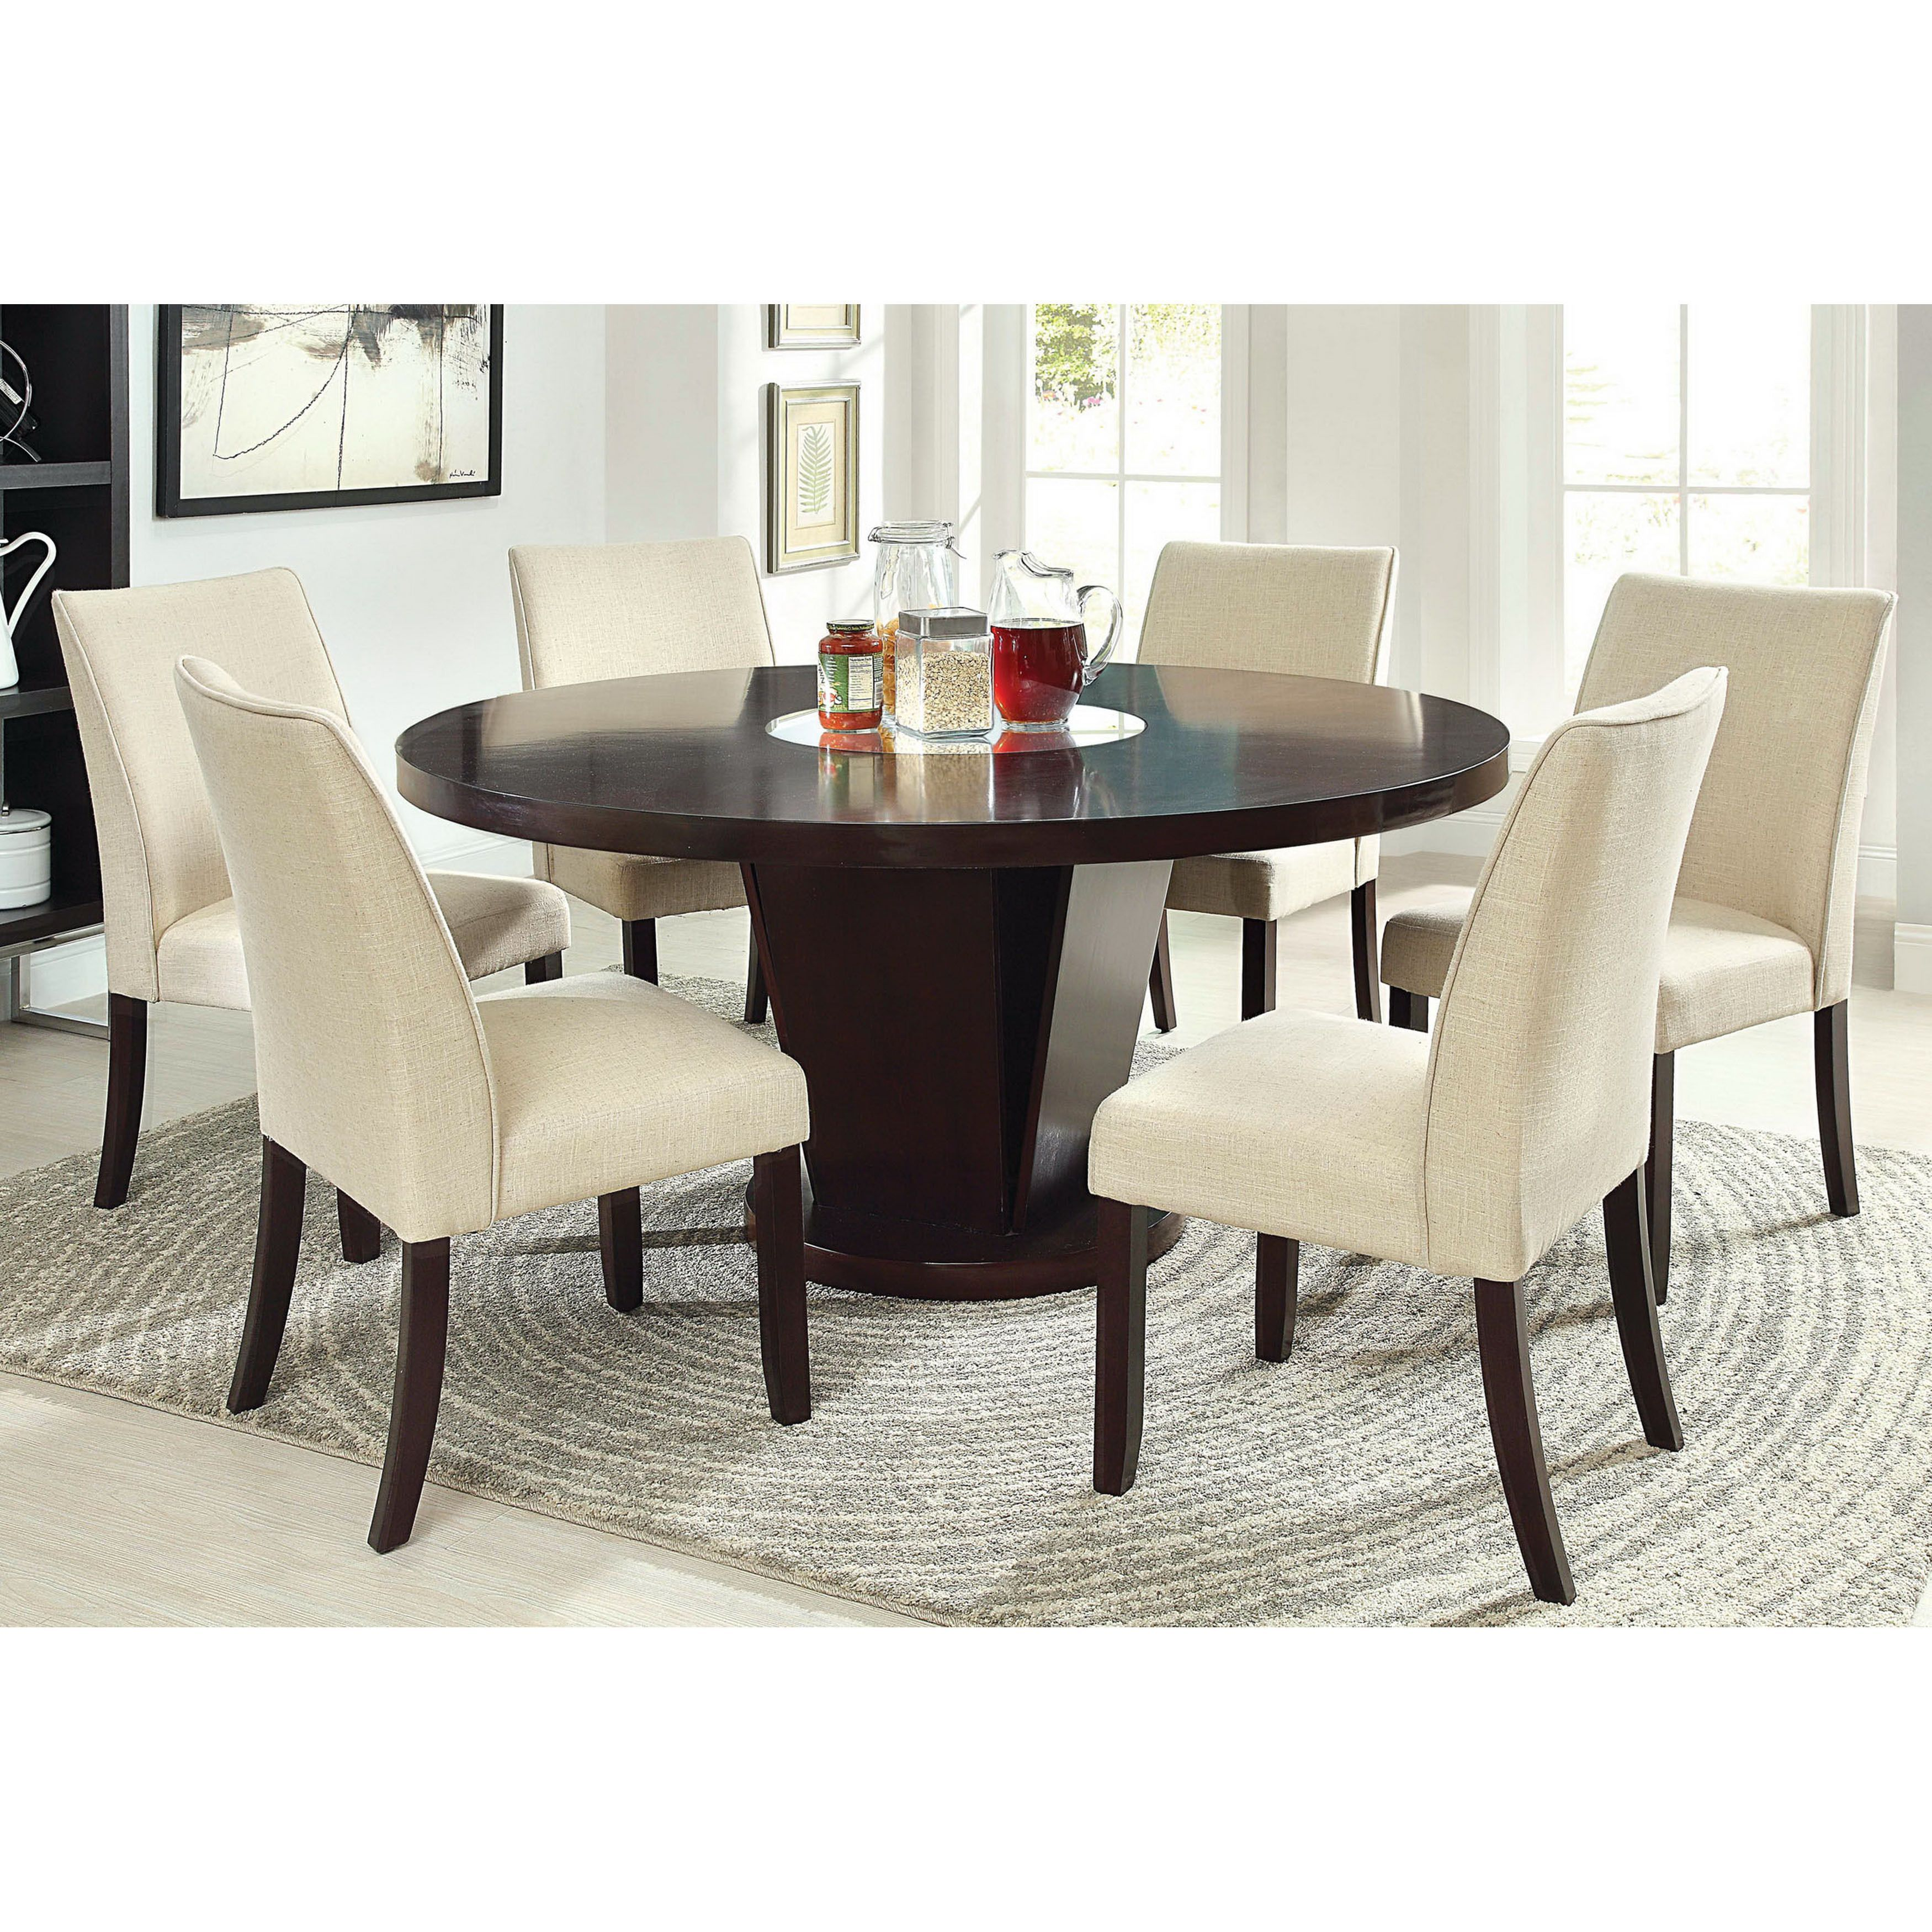 Contemporary Style Dining Set That Offers A Huge Inch Round - 60 inch round dining room table sets